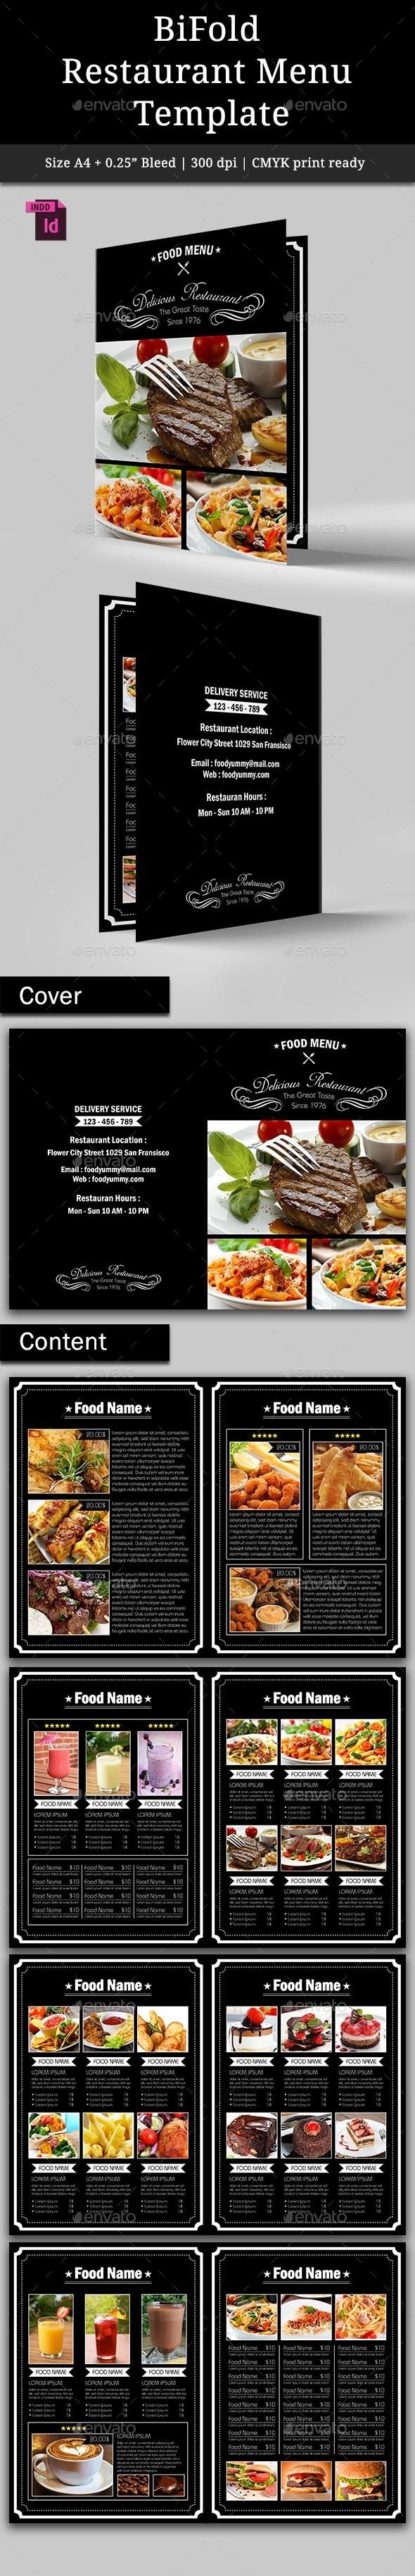 The  Best Restaurant Menu Template Ideas On   Menu